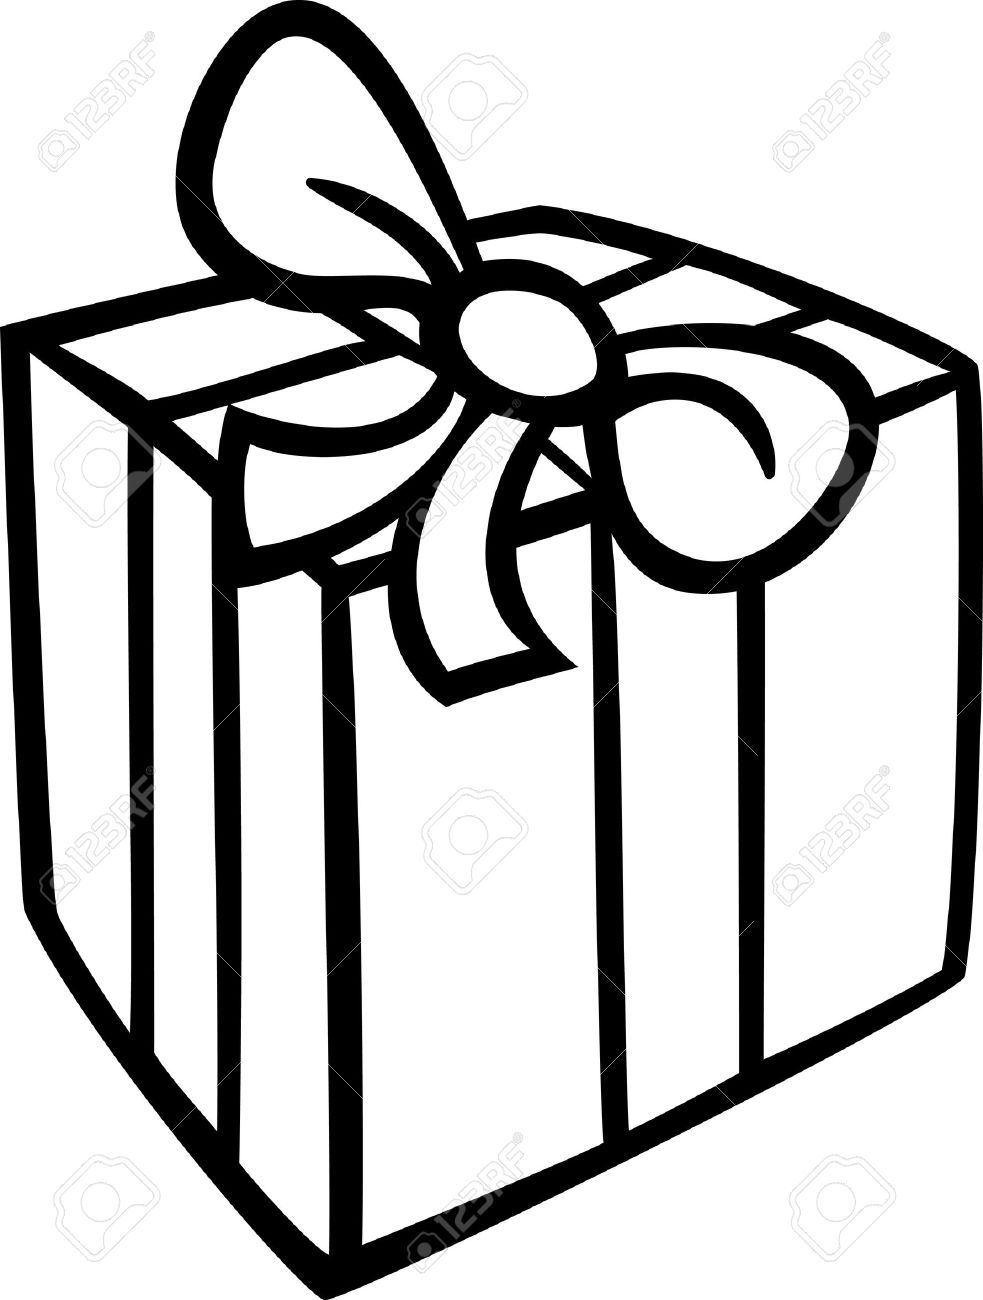 Christmas presents clipart black and white 2 » Clipart Portal.